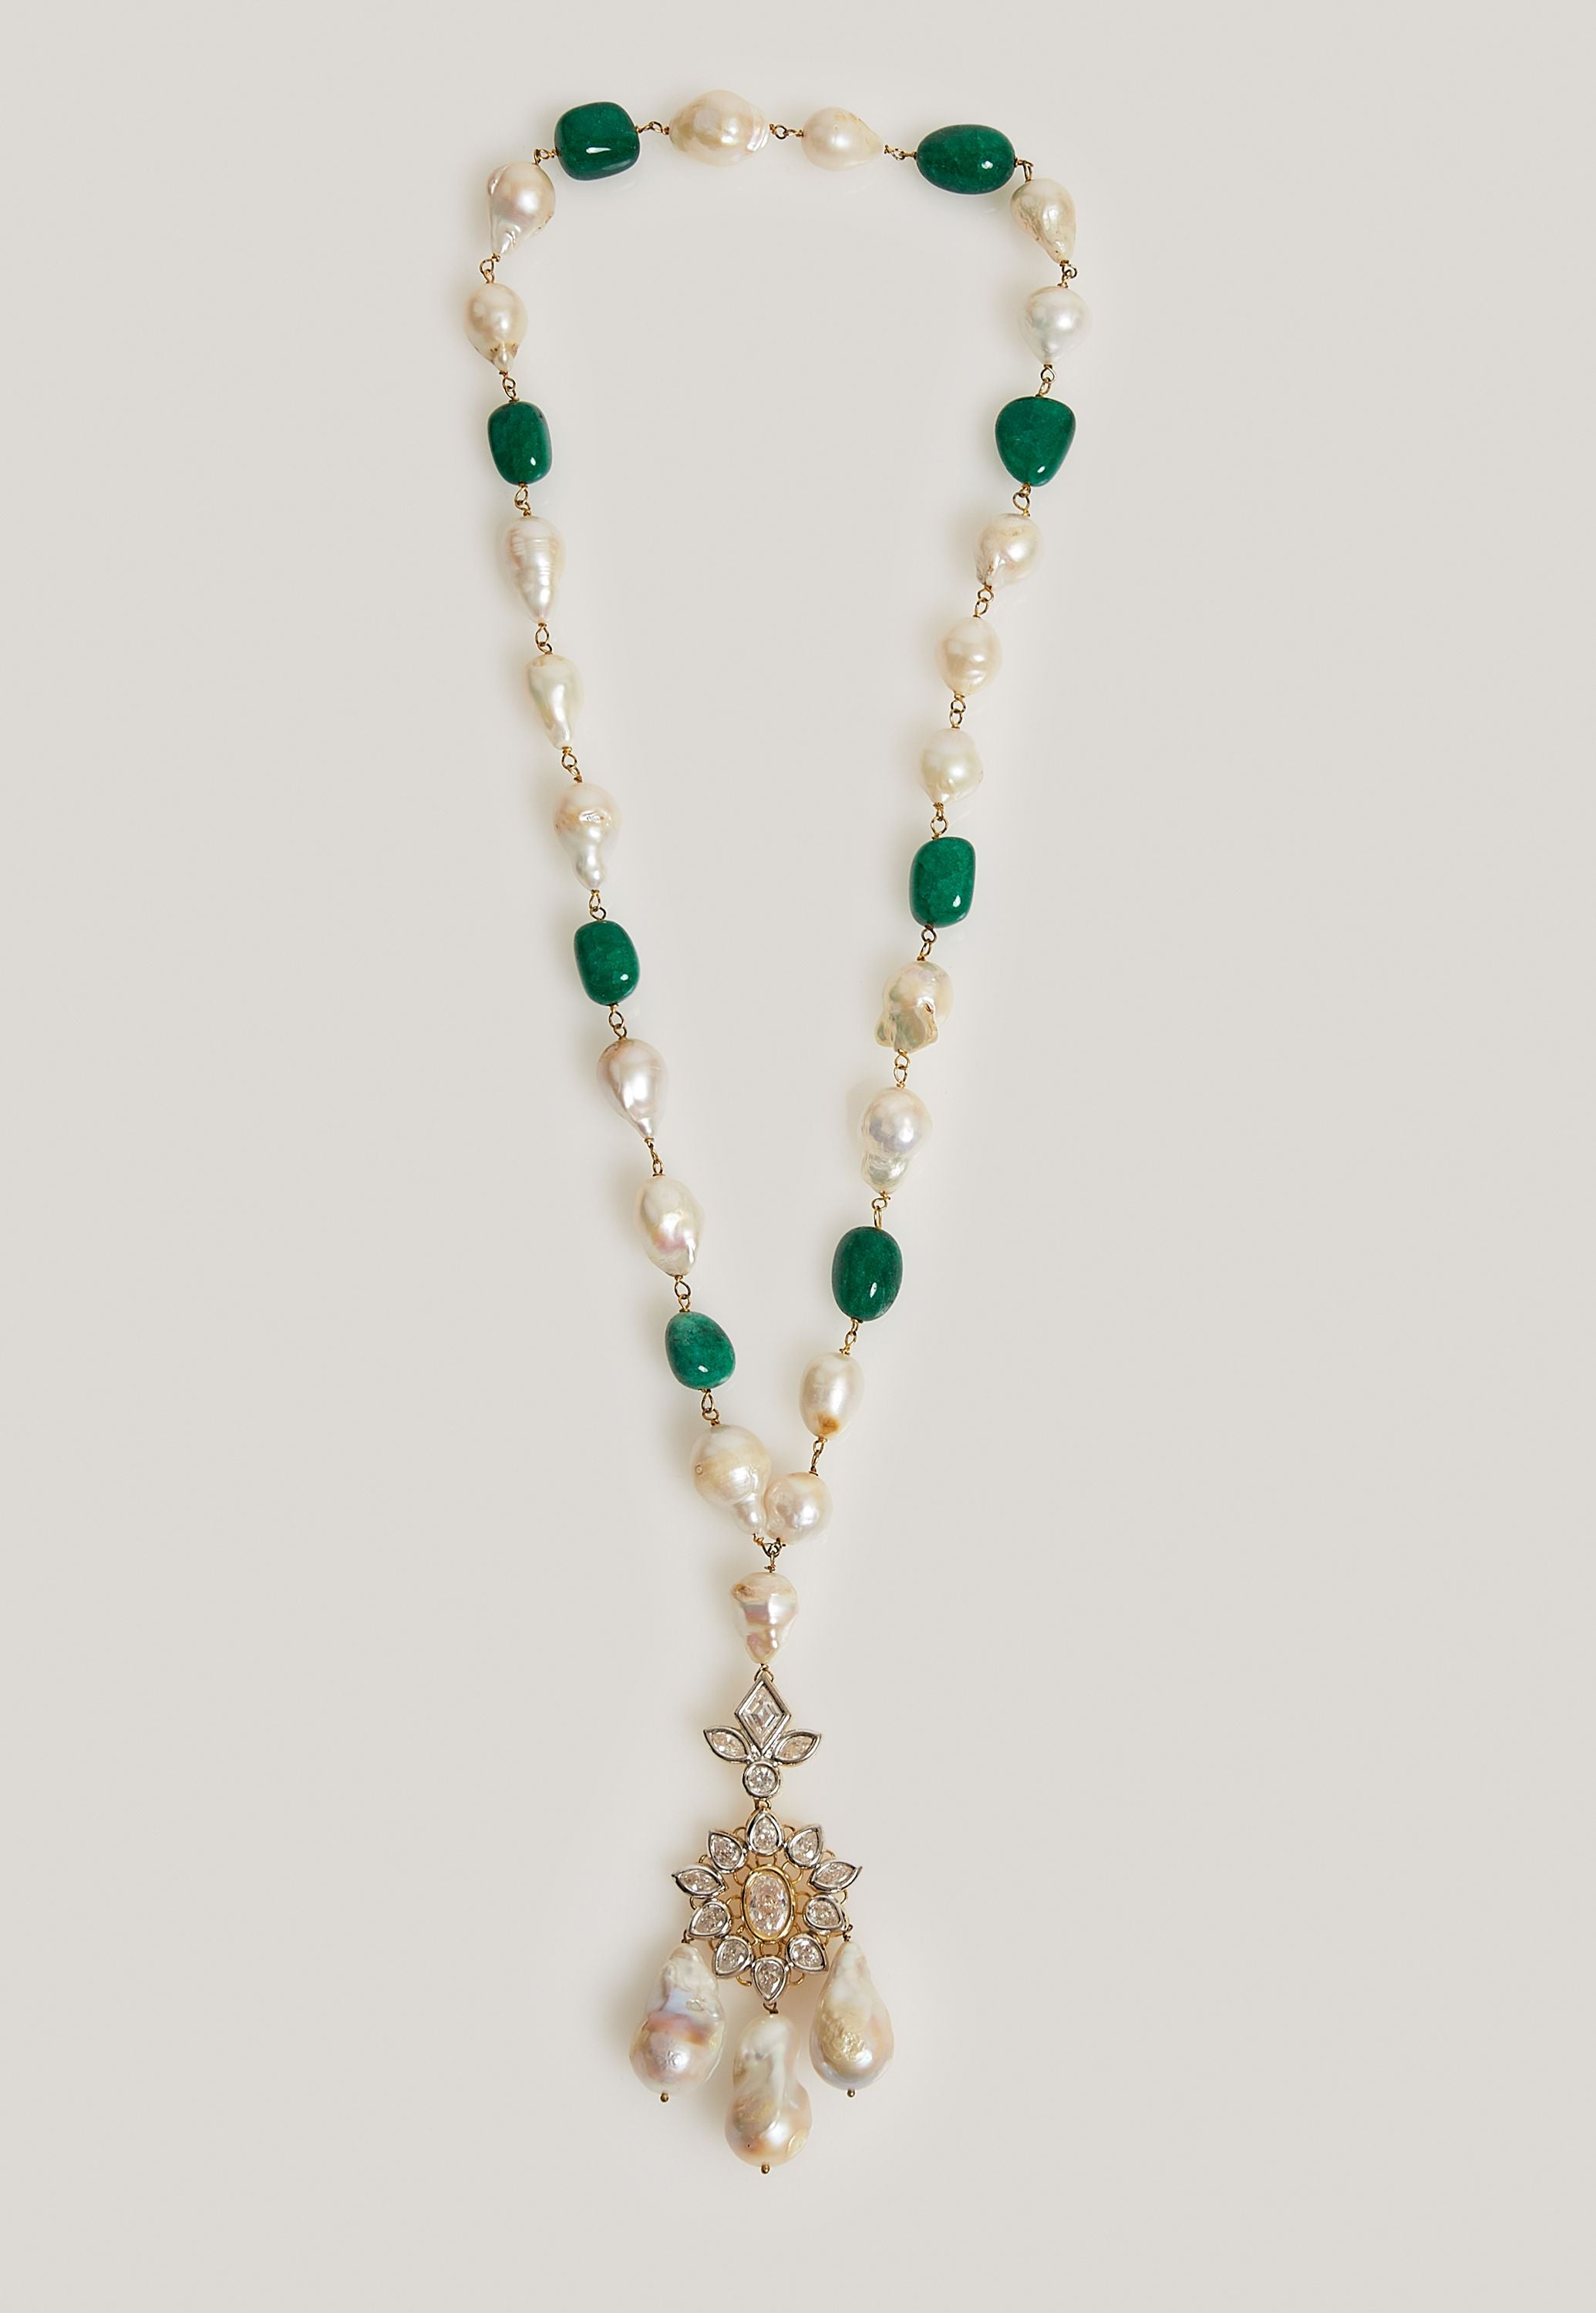 PEARL AND SIMULATED EMERALD GOLD NECKLACE